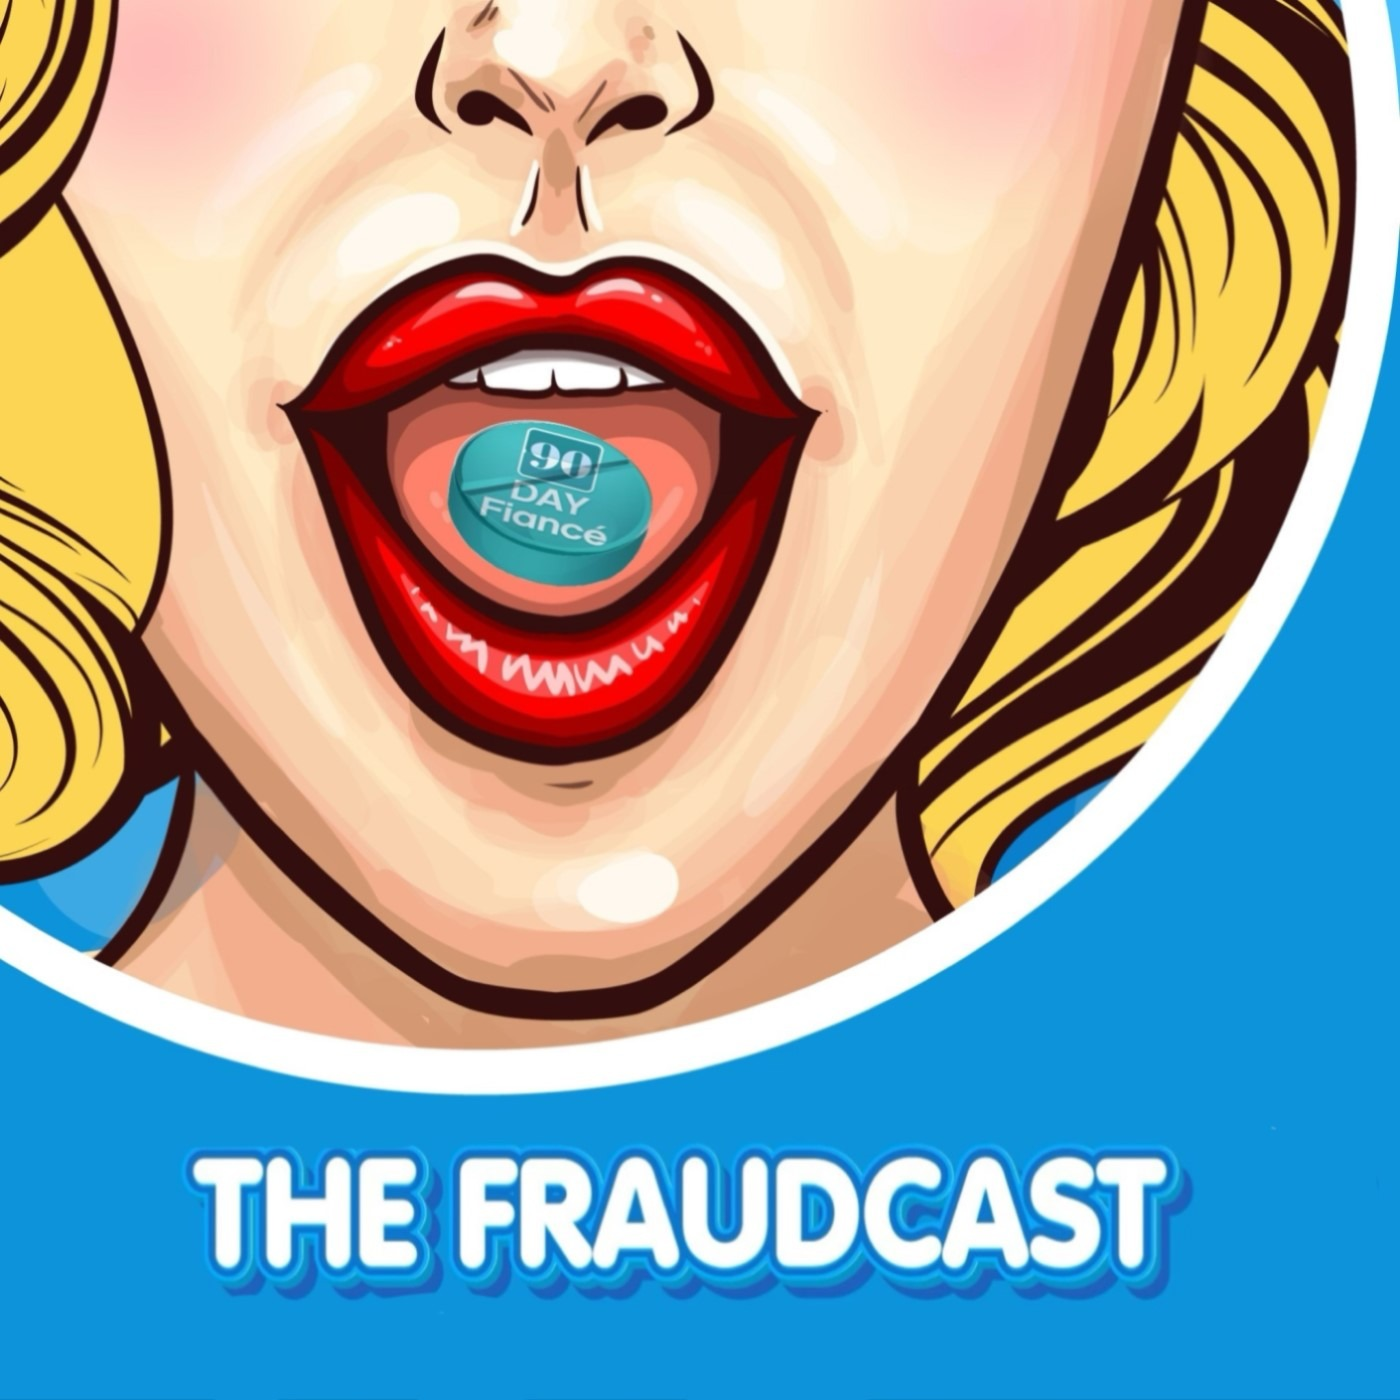 Episode 59: Pink Fraud: A Special Pink Shade/Fraudcast Crossover Event!